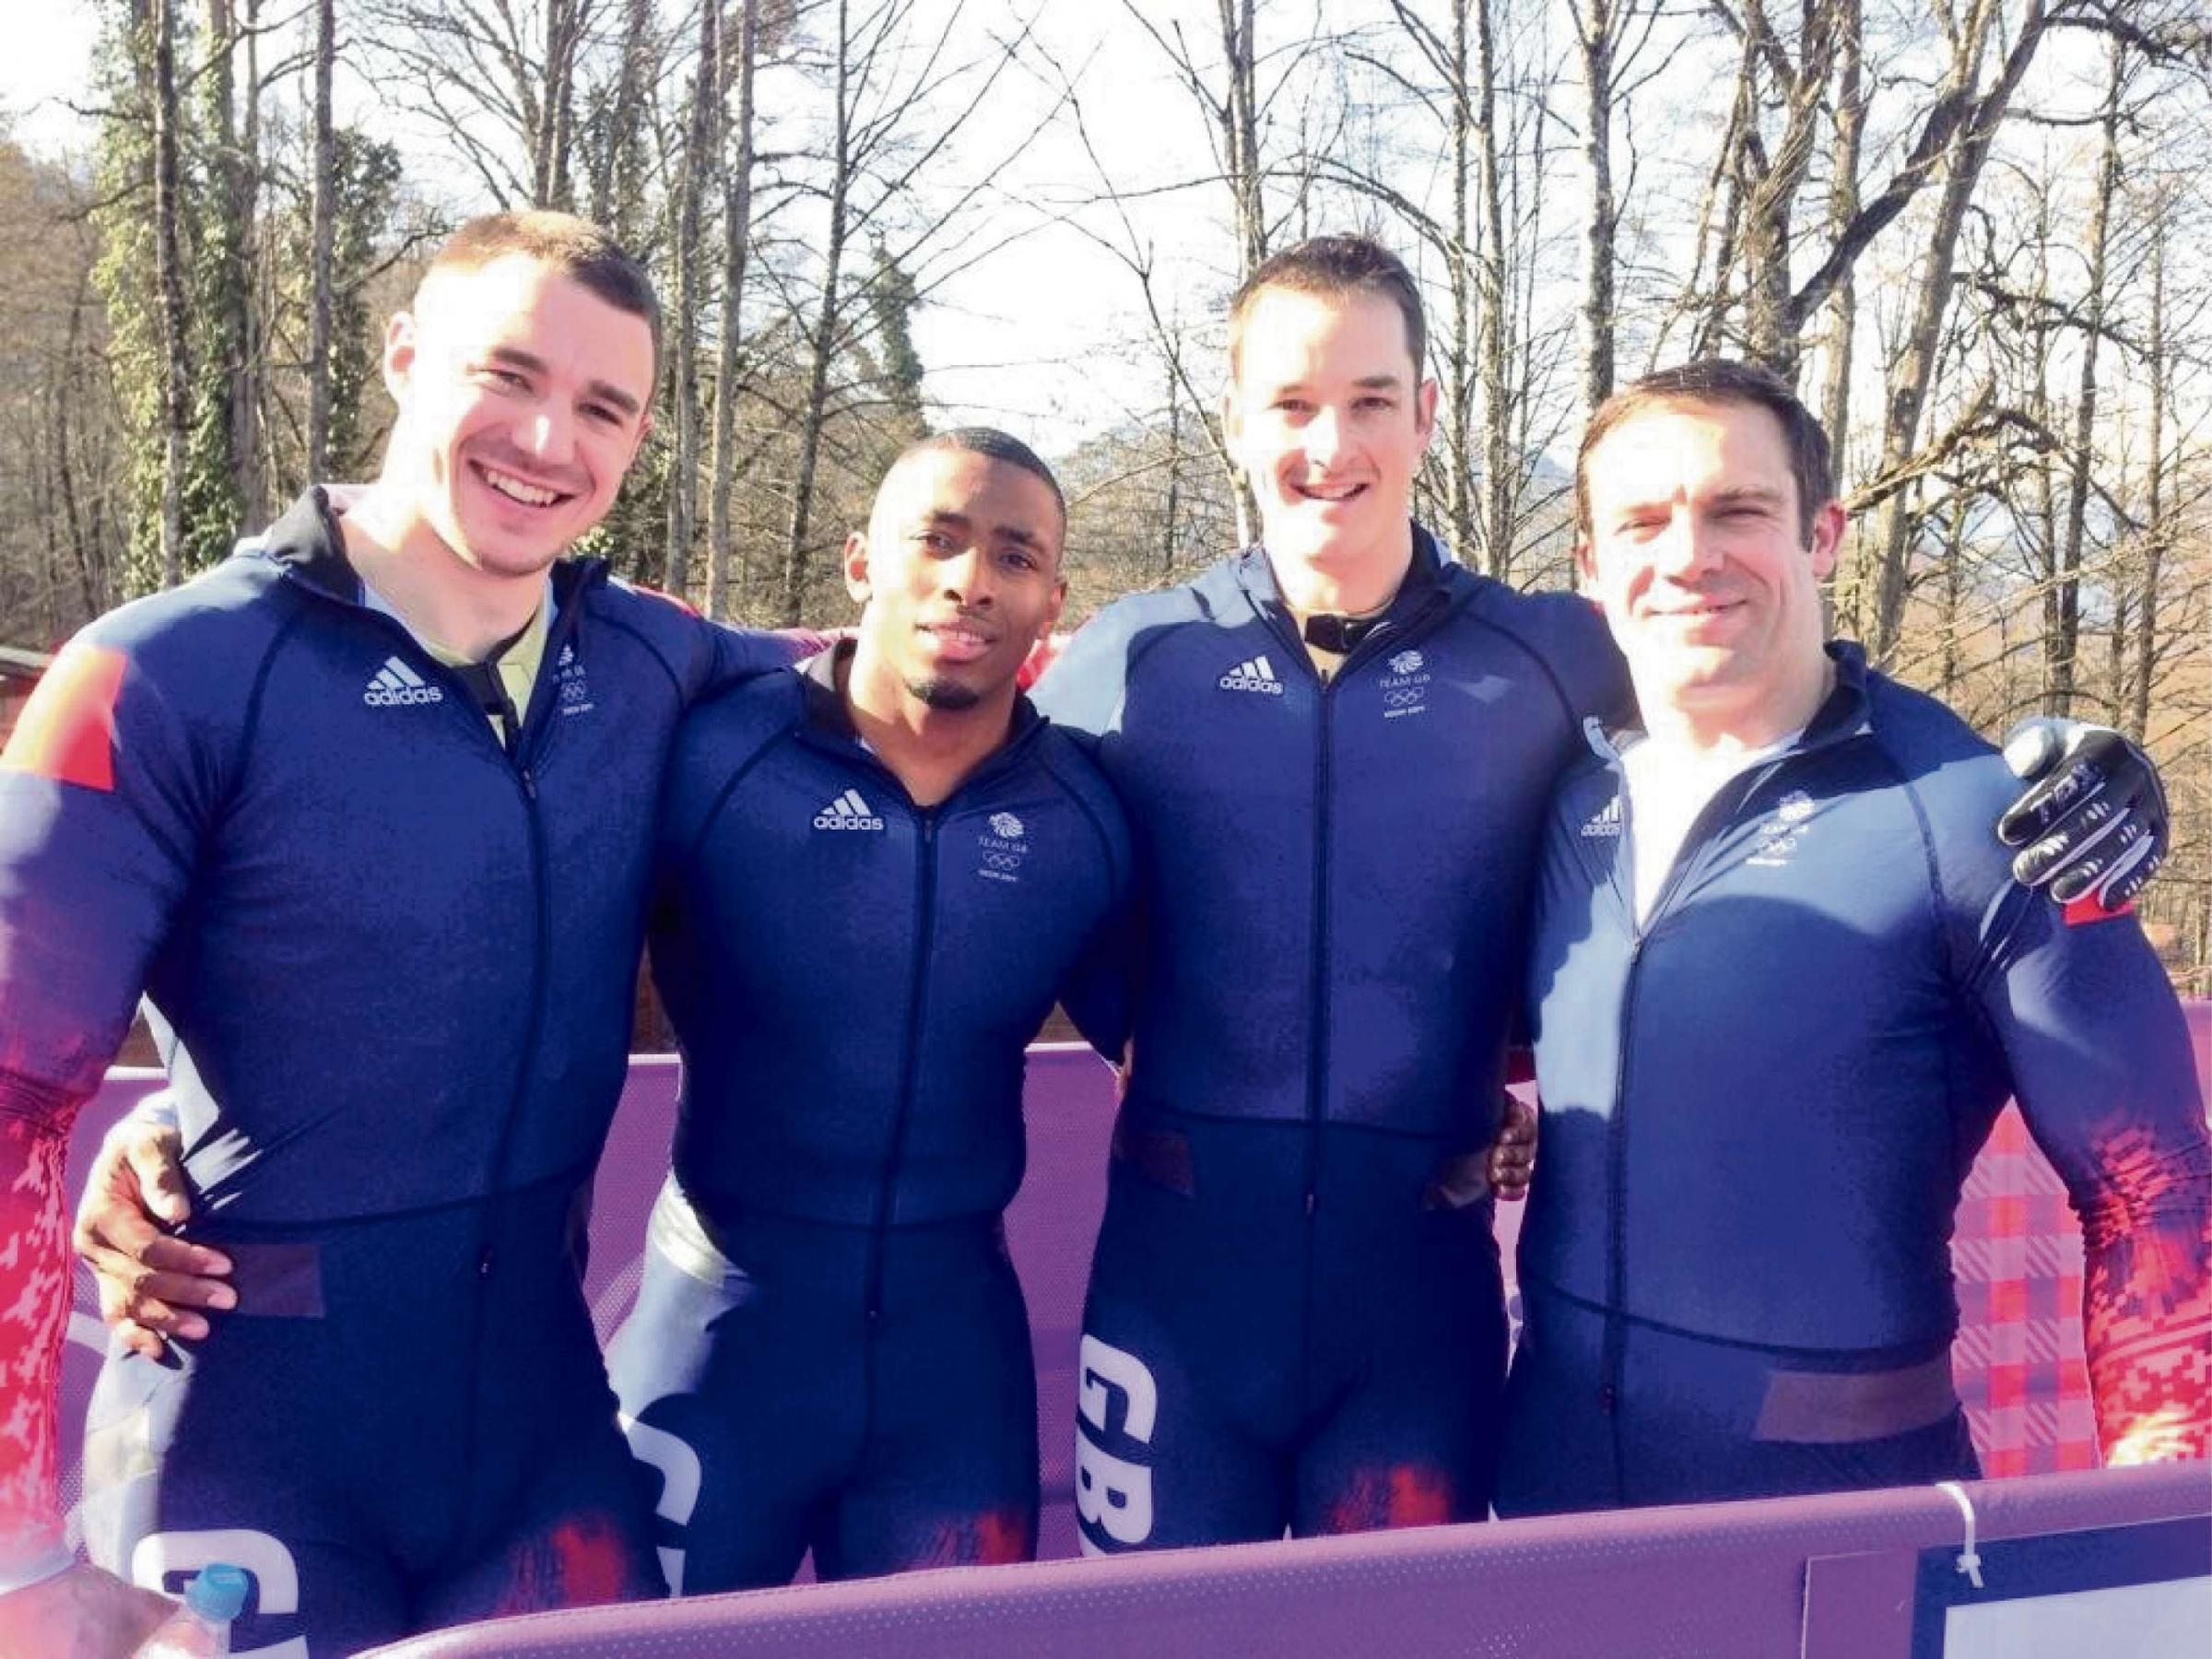 SUPERB QUARTET: GB four-man bobsleigh team who finished fifth in Sochi were Bruce Tasker, Joel Fearon, Stuart Benson and pilot John Jackson. (4233785)